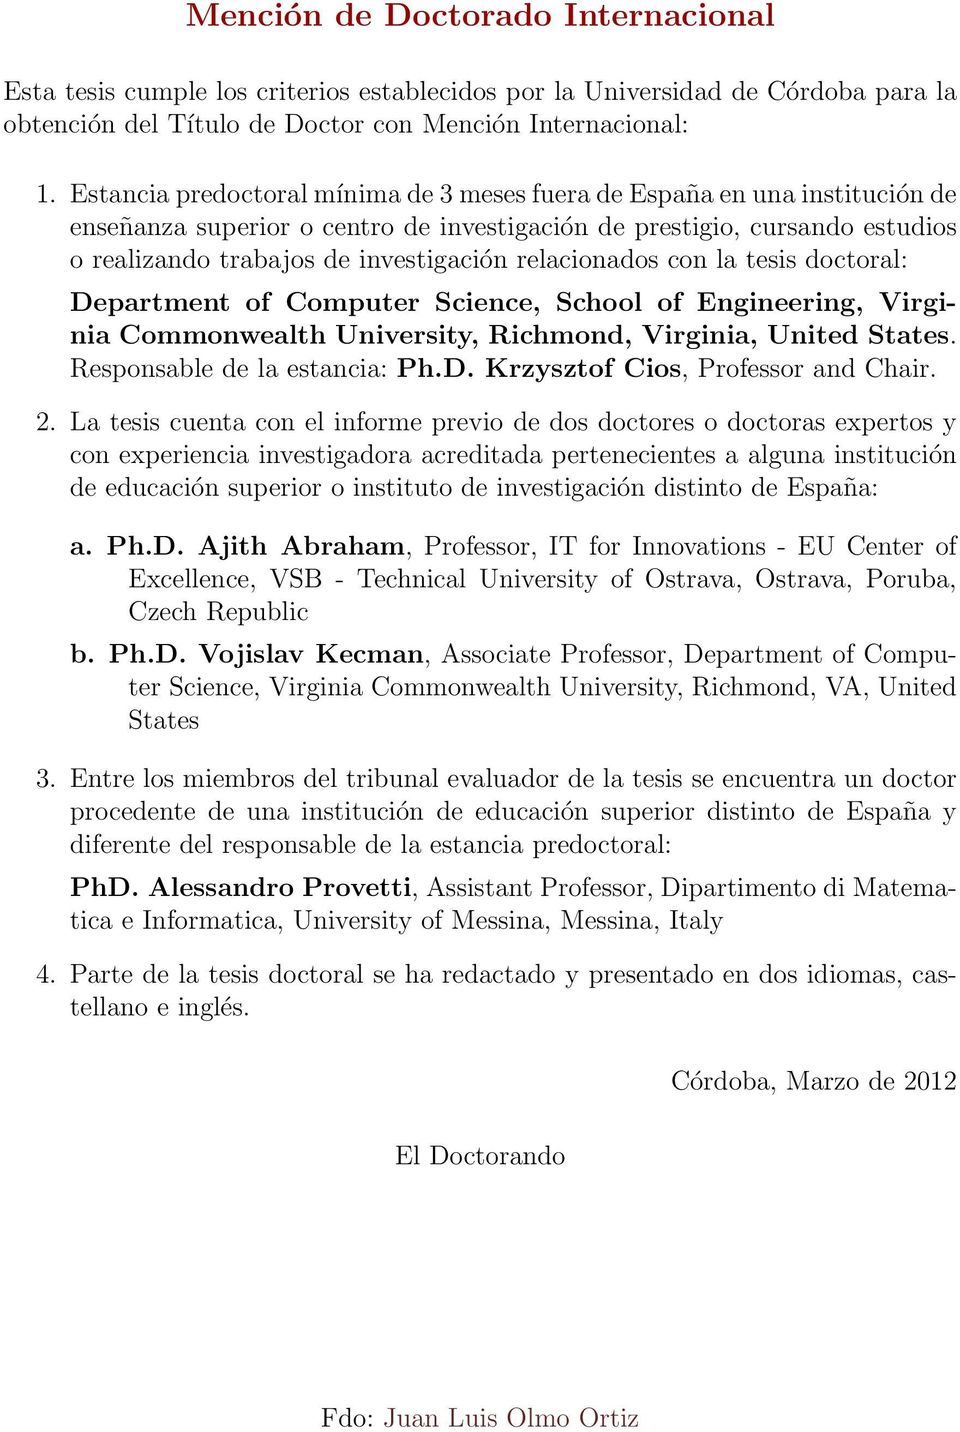 relacionados con la tesis doctoral: Department of Computer Science, School of Engineering, Virginia Commonwealth University, Richmond, Virginia, United States. Responsable de la estancia: Ph.D. Krzysztof Cios, Professor and Chair.